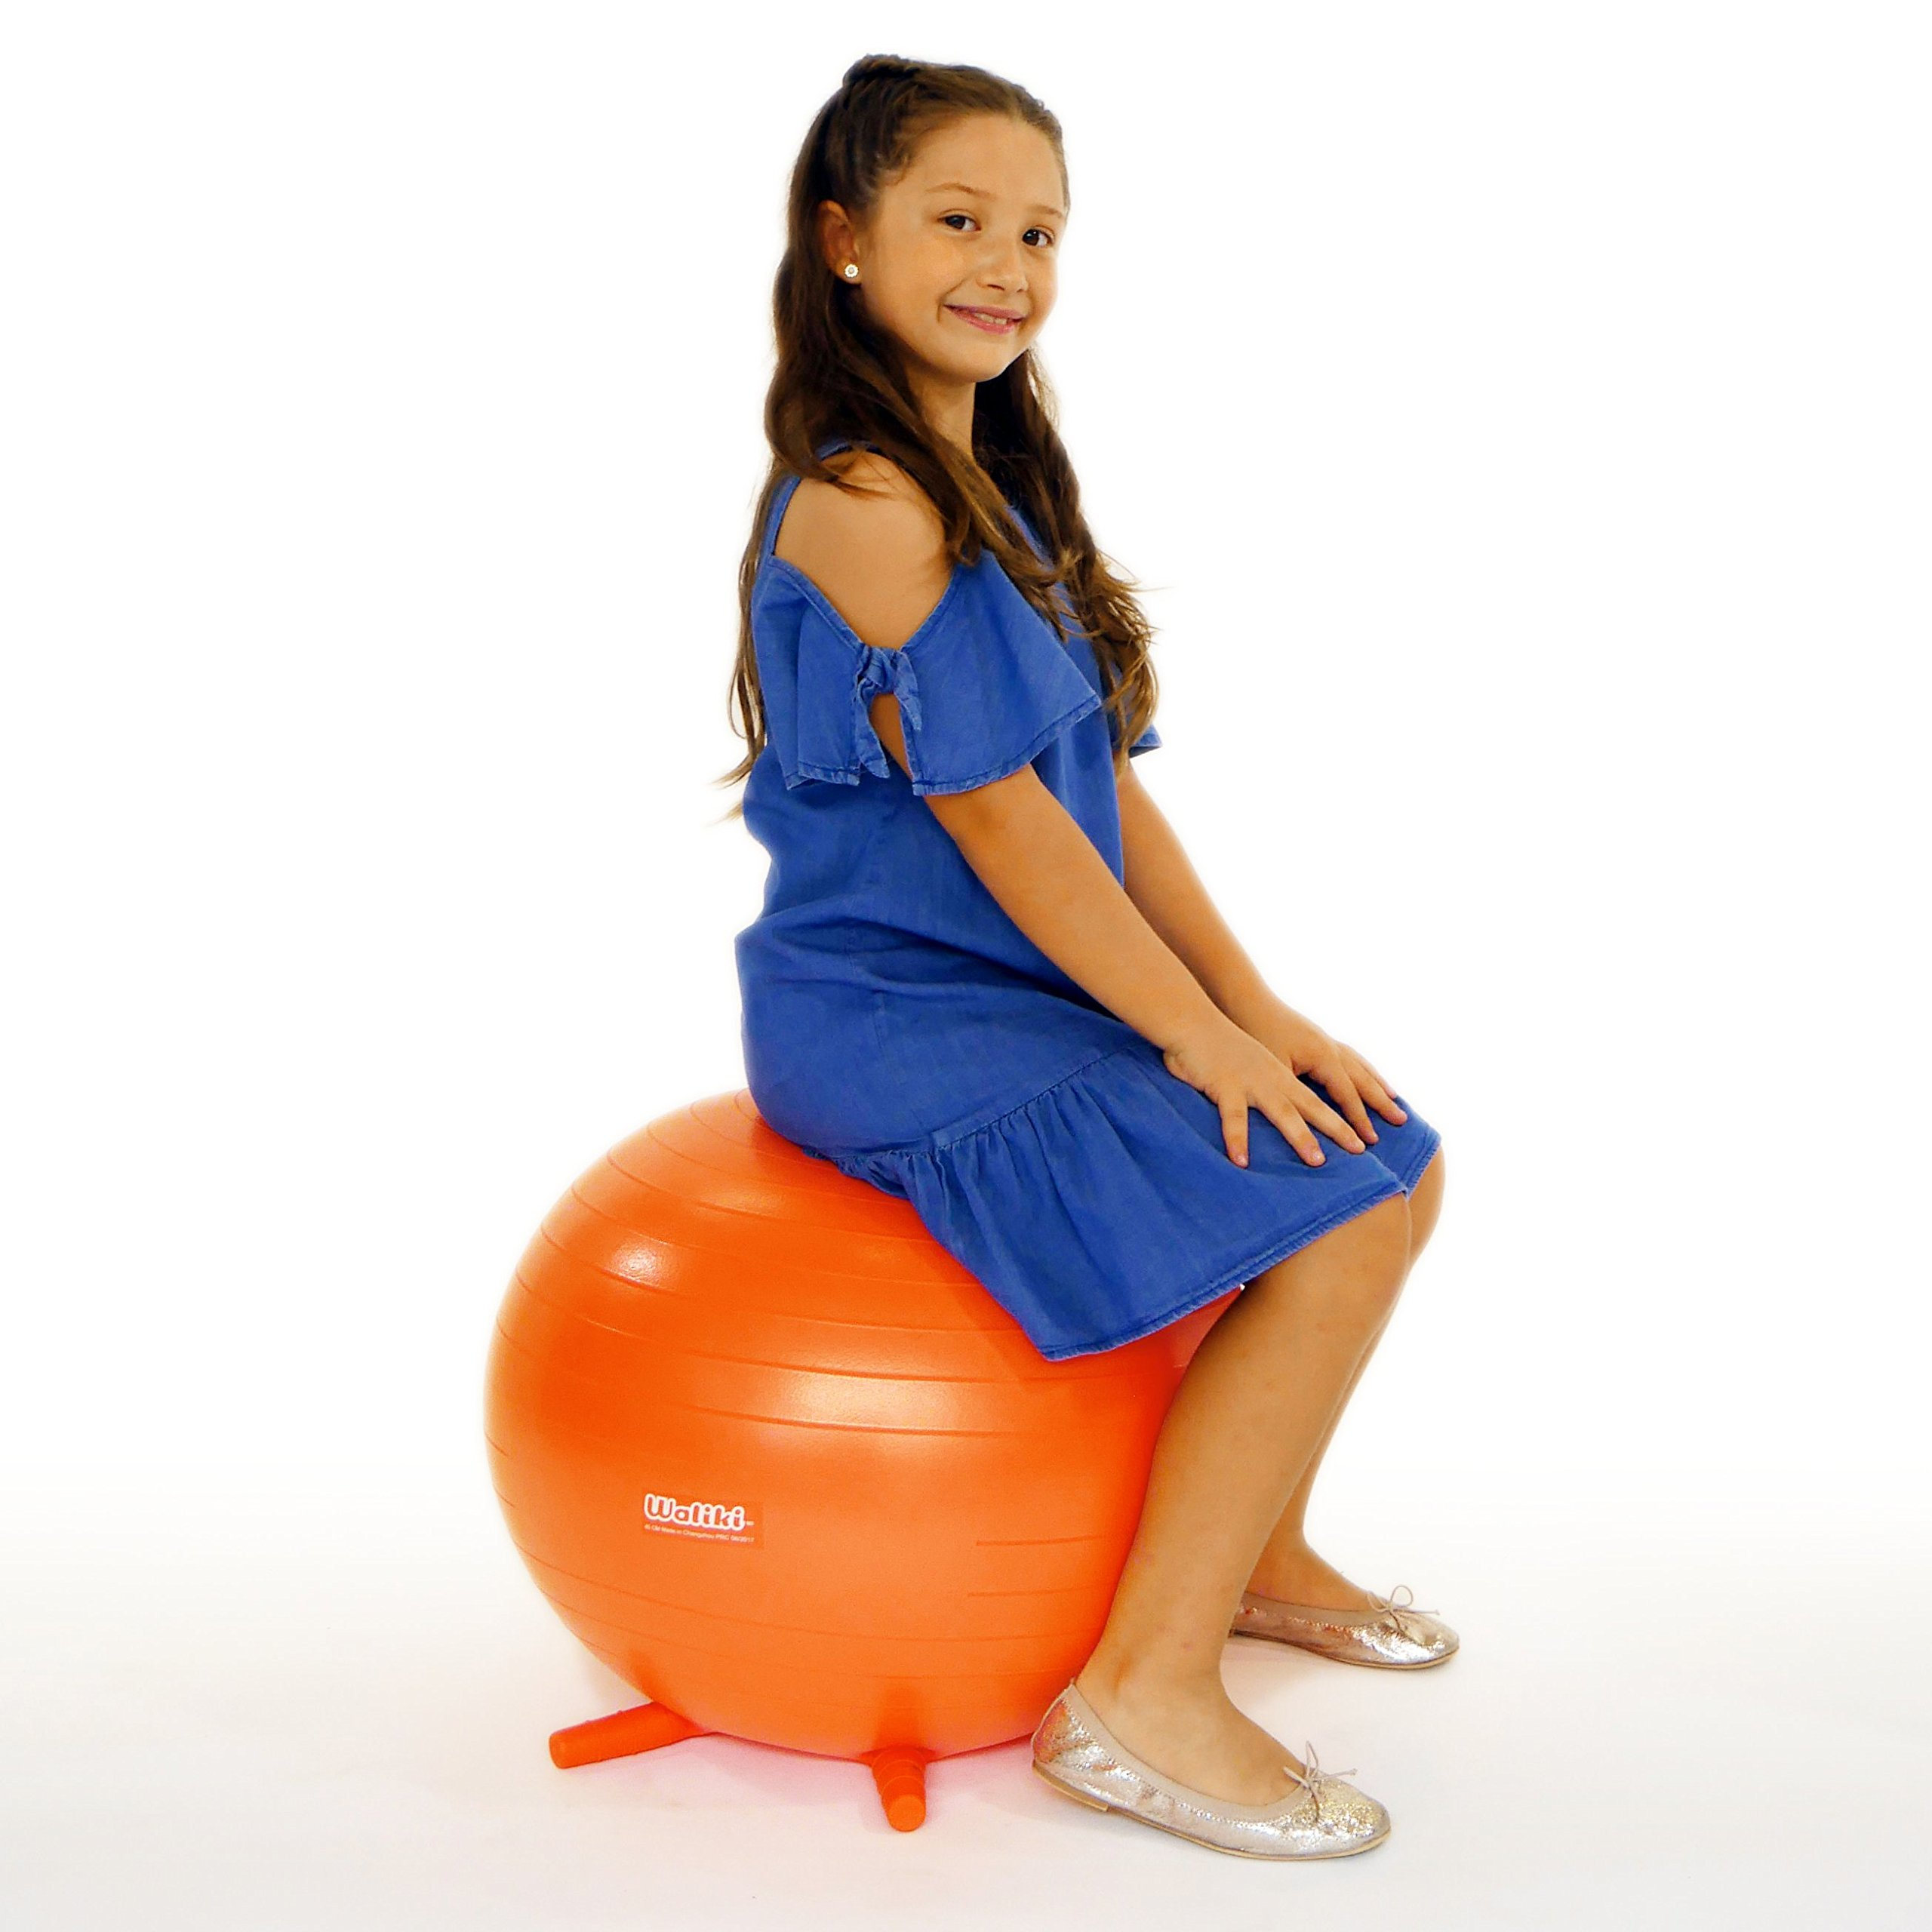 WALIKI TOYS Children's Chair Ball with Feet, Alternative Classroom Seating (Inflatable Balance Ball Chair With Stability Legs for School, Pump Included, 18''/45CM, Orange) by WALIKI (Image #8)